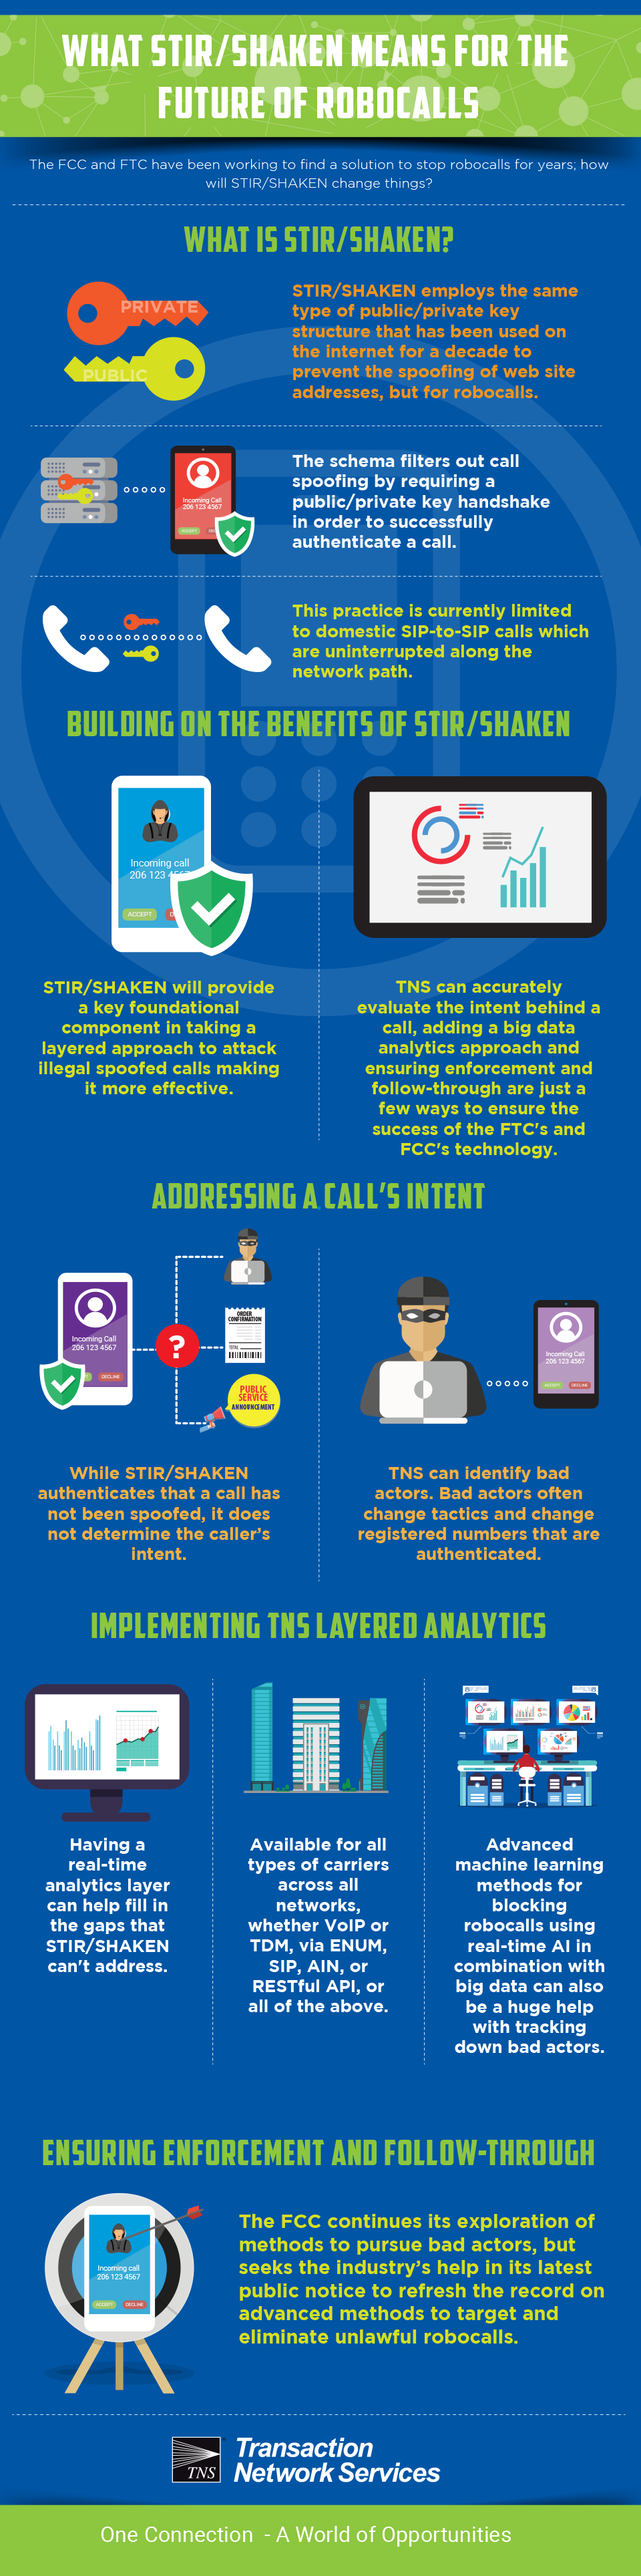 What STIR/SHAKEN Means for the Future of Robocalls